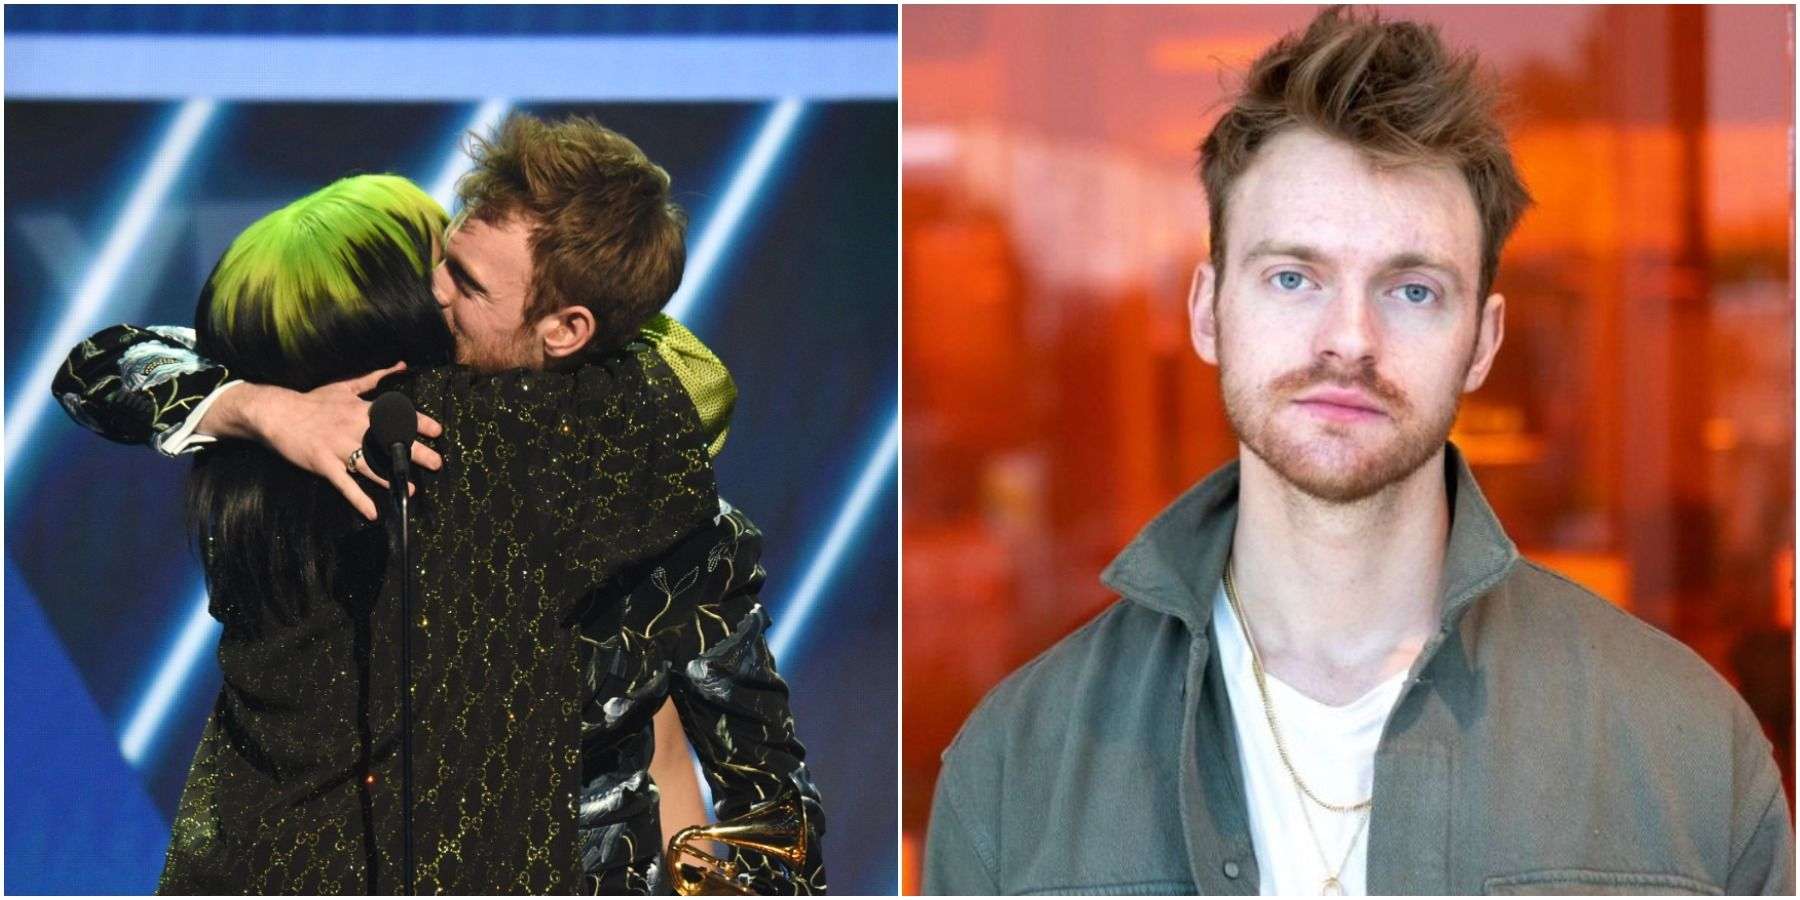 10 Little-Known Facts About Billie Eilish's Brother, Finneas